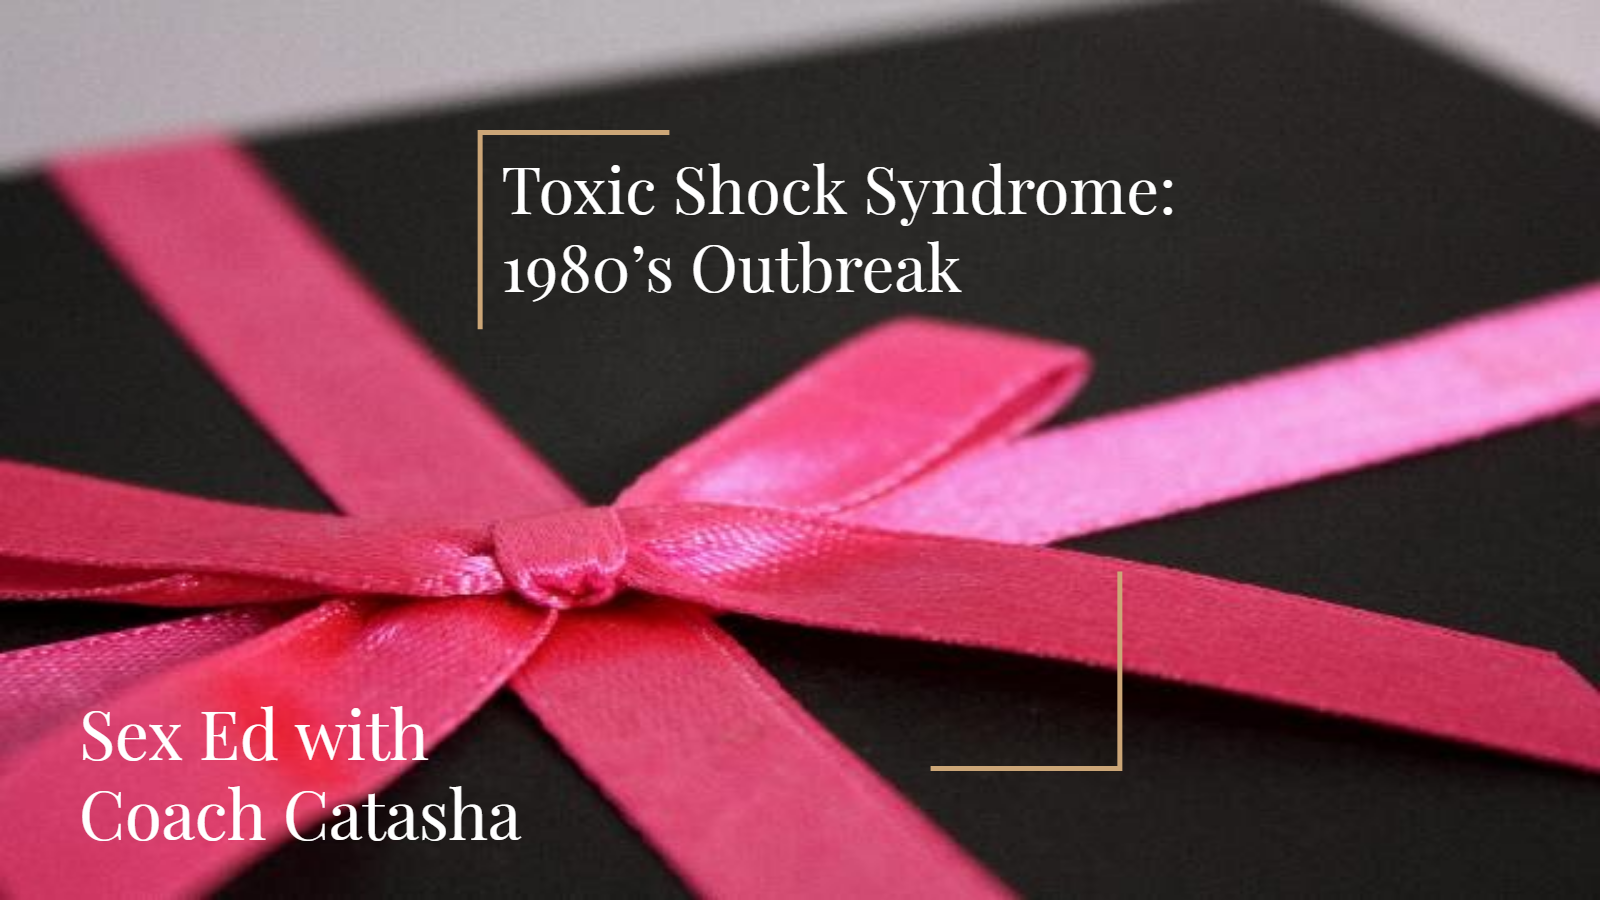 TSS - The 1980's Outbreak picture on intro slide